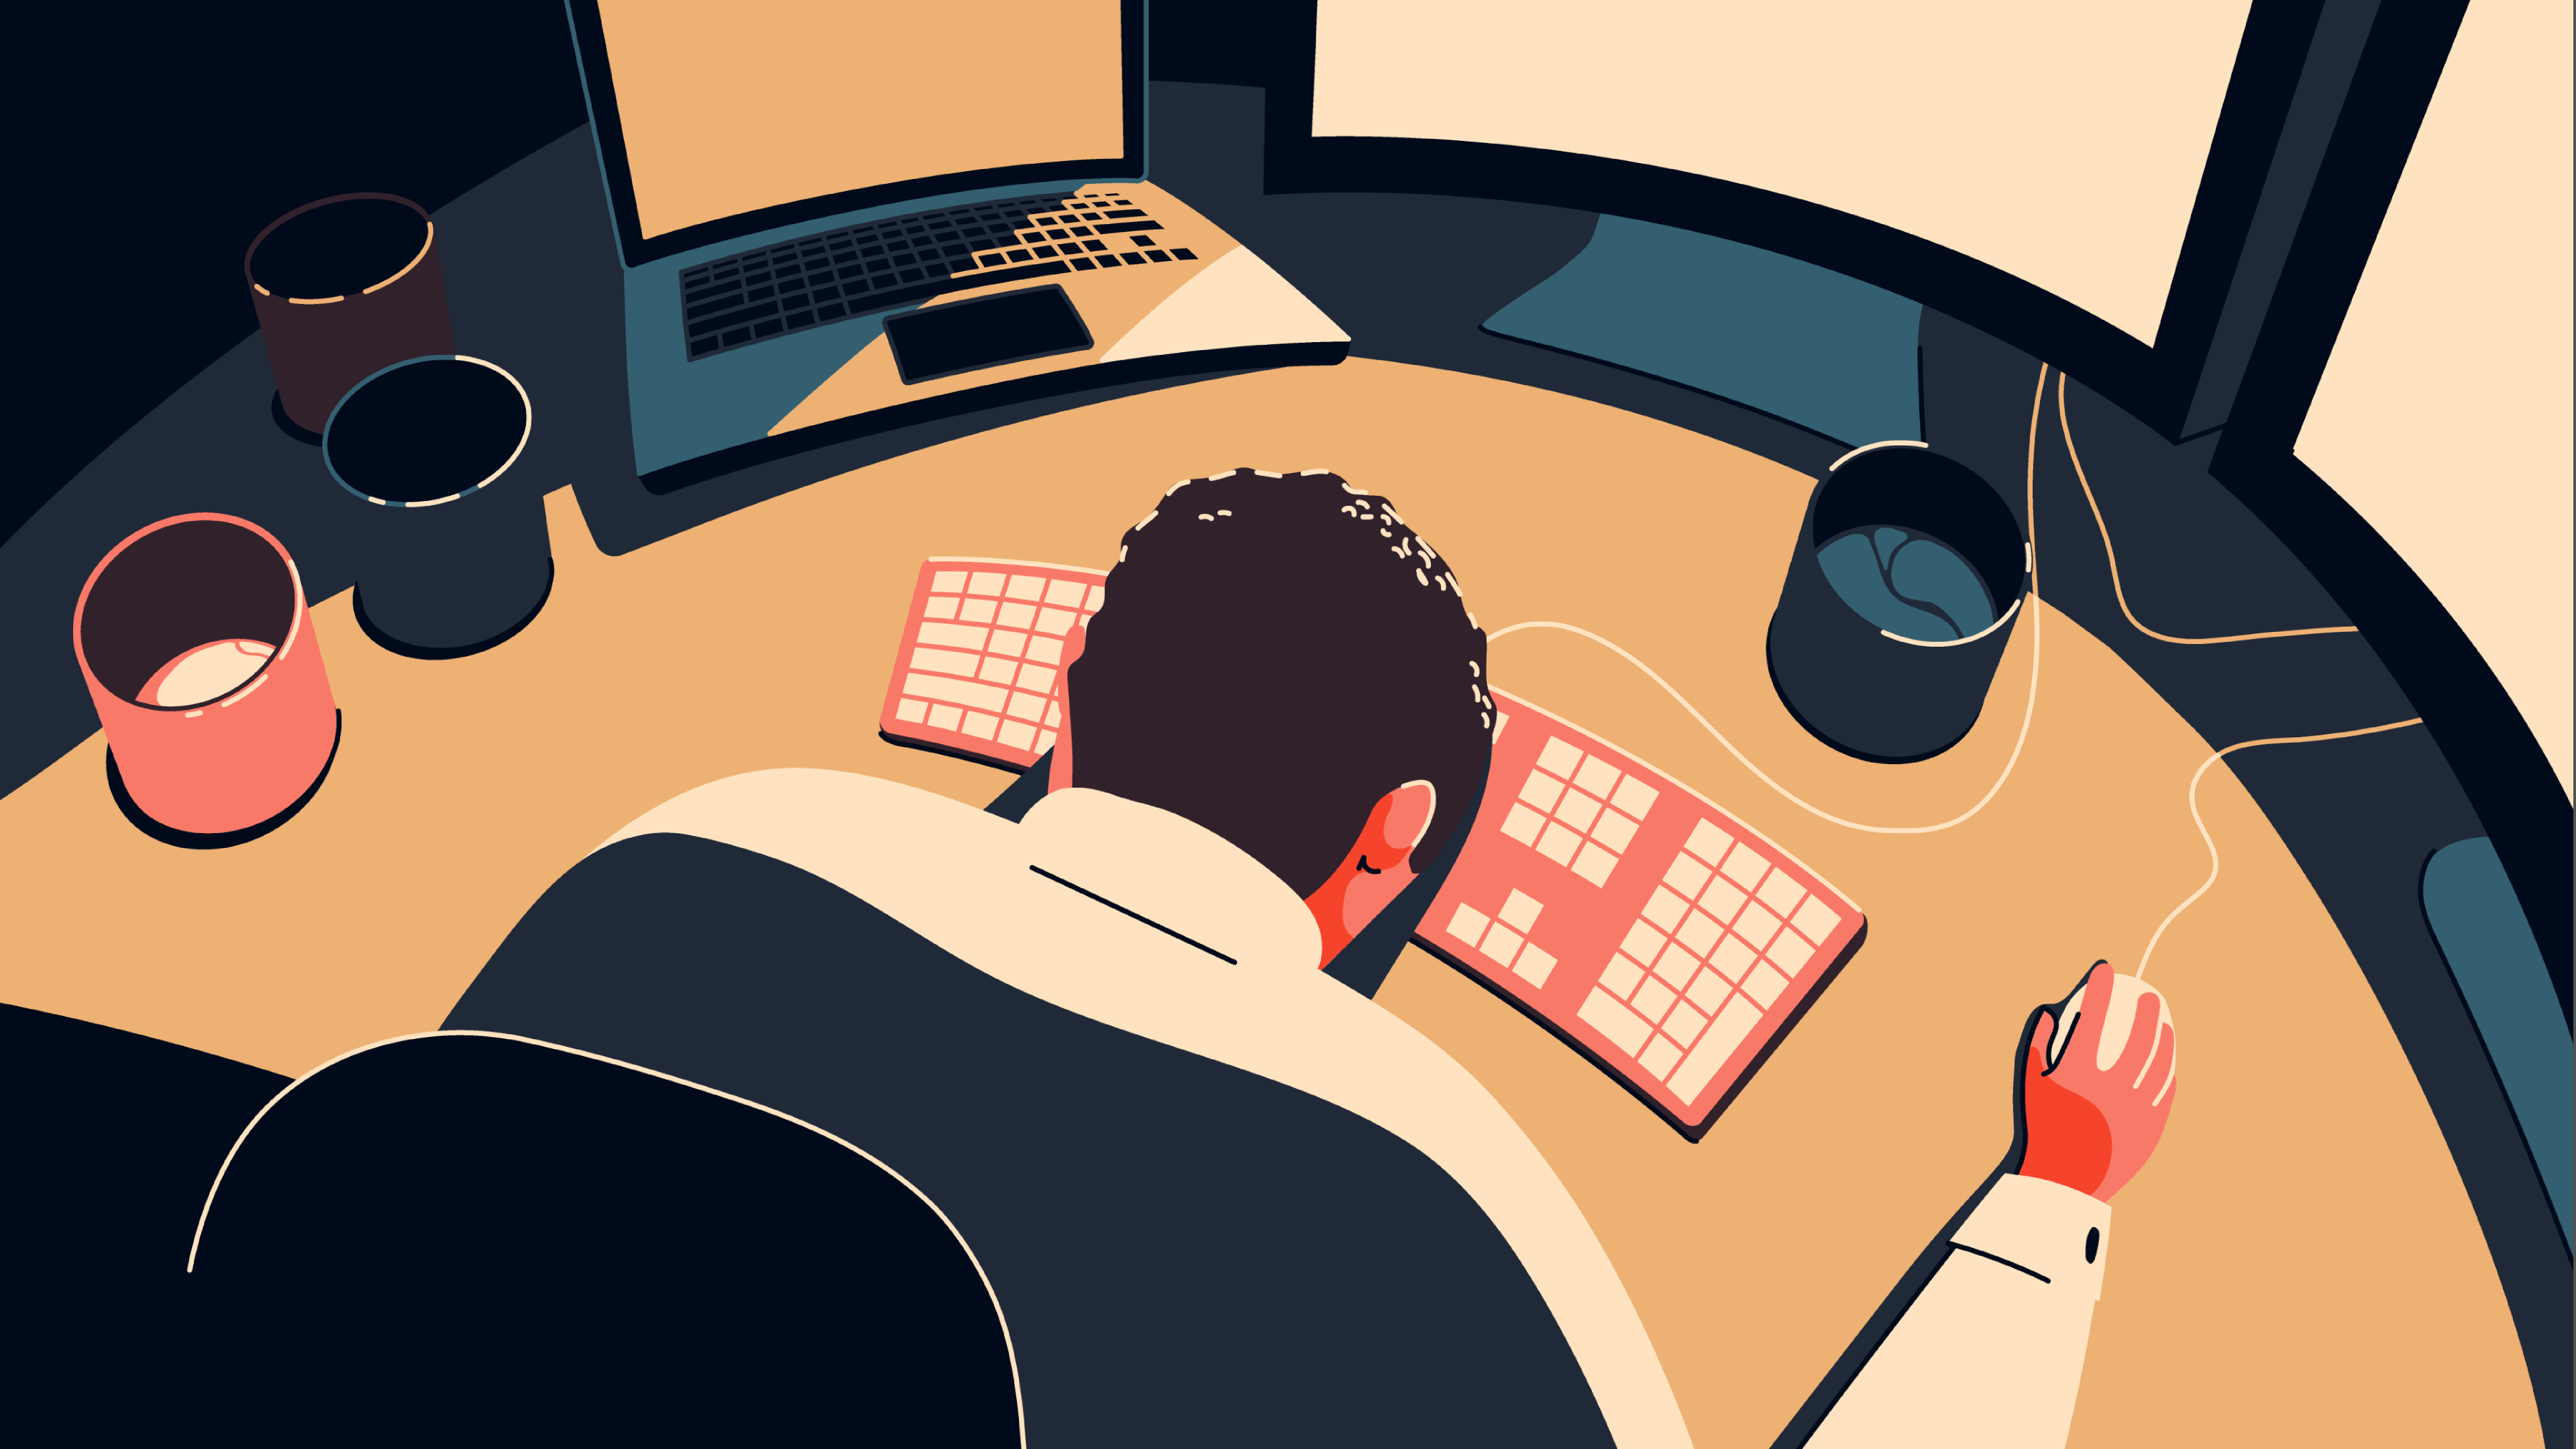 Man sits with his face down on the keyboard at his desk, hand holding the computer mouse, exhausted.